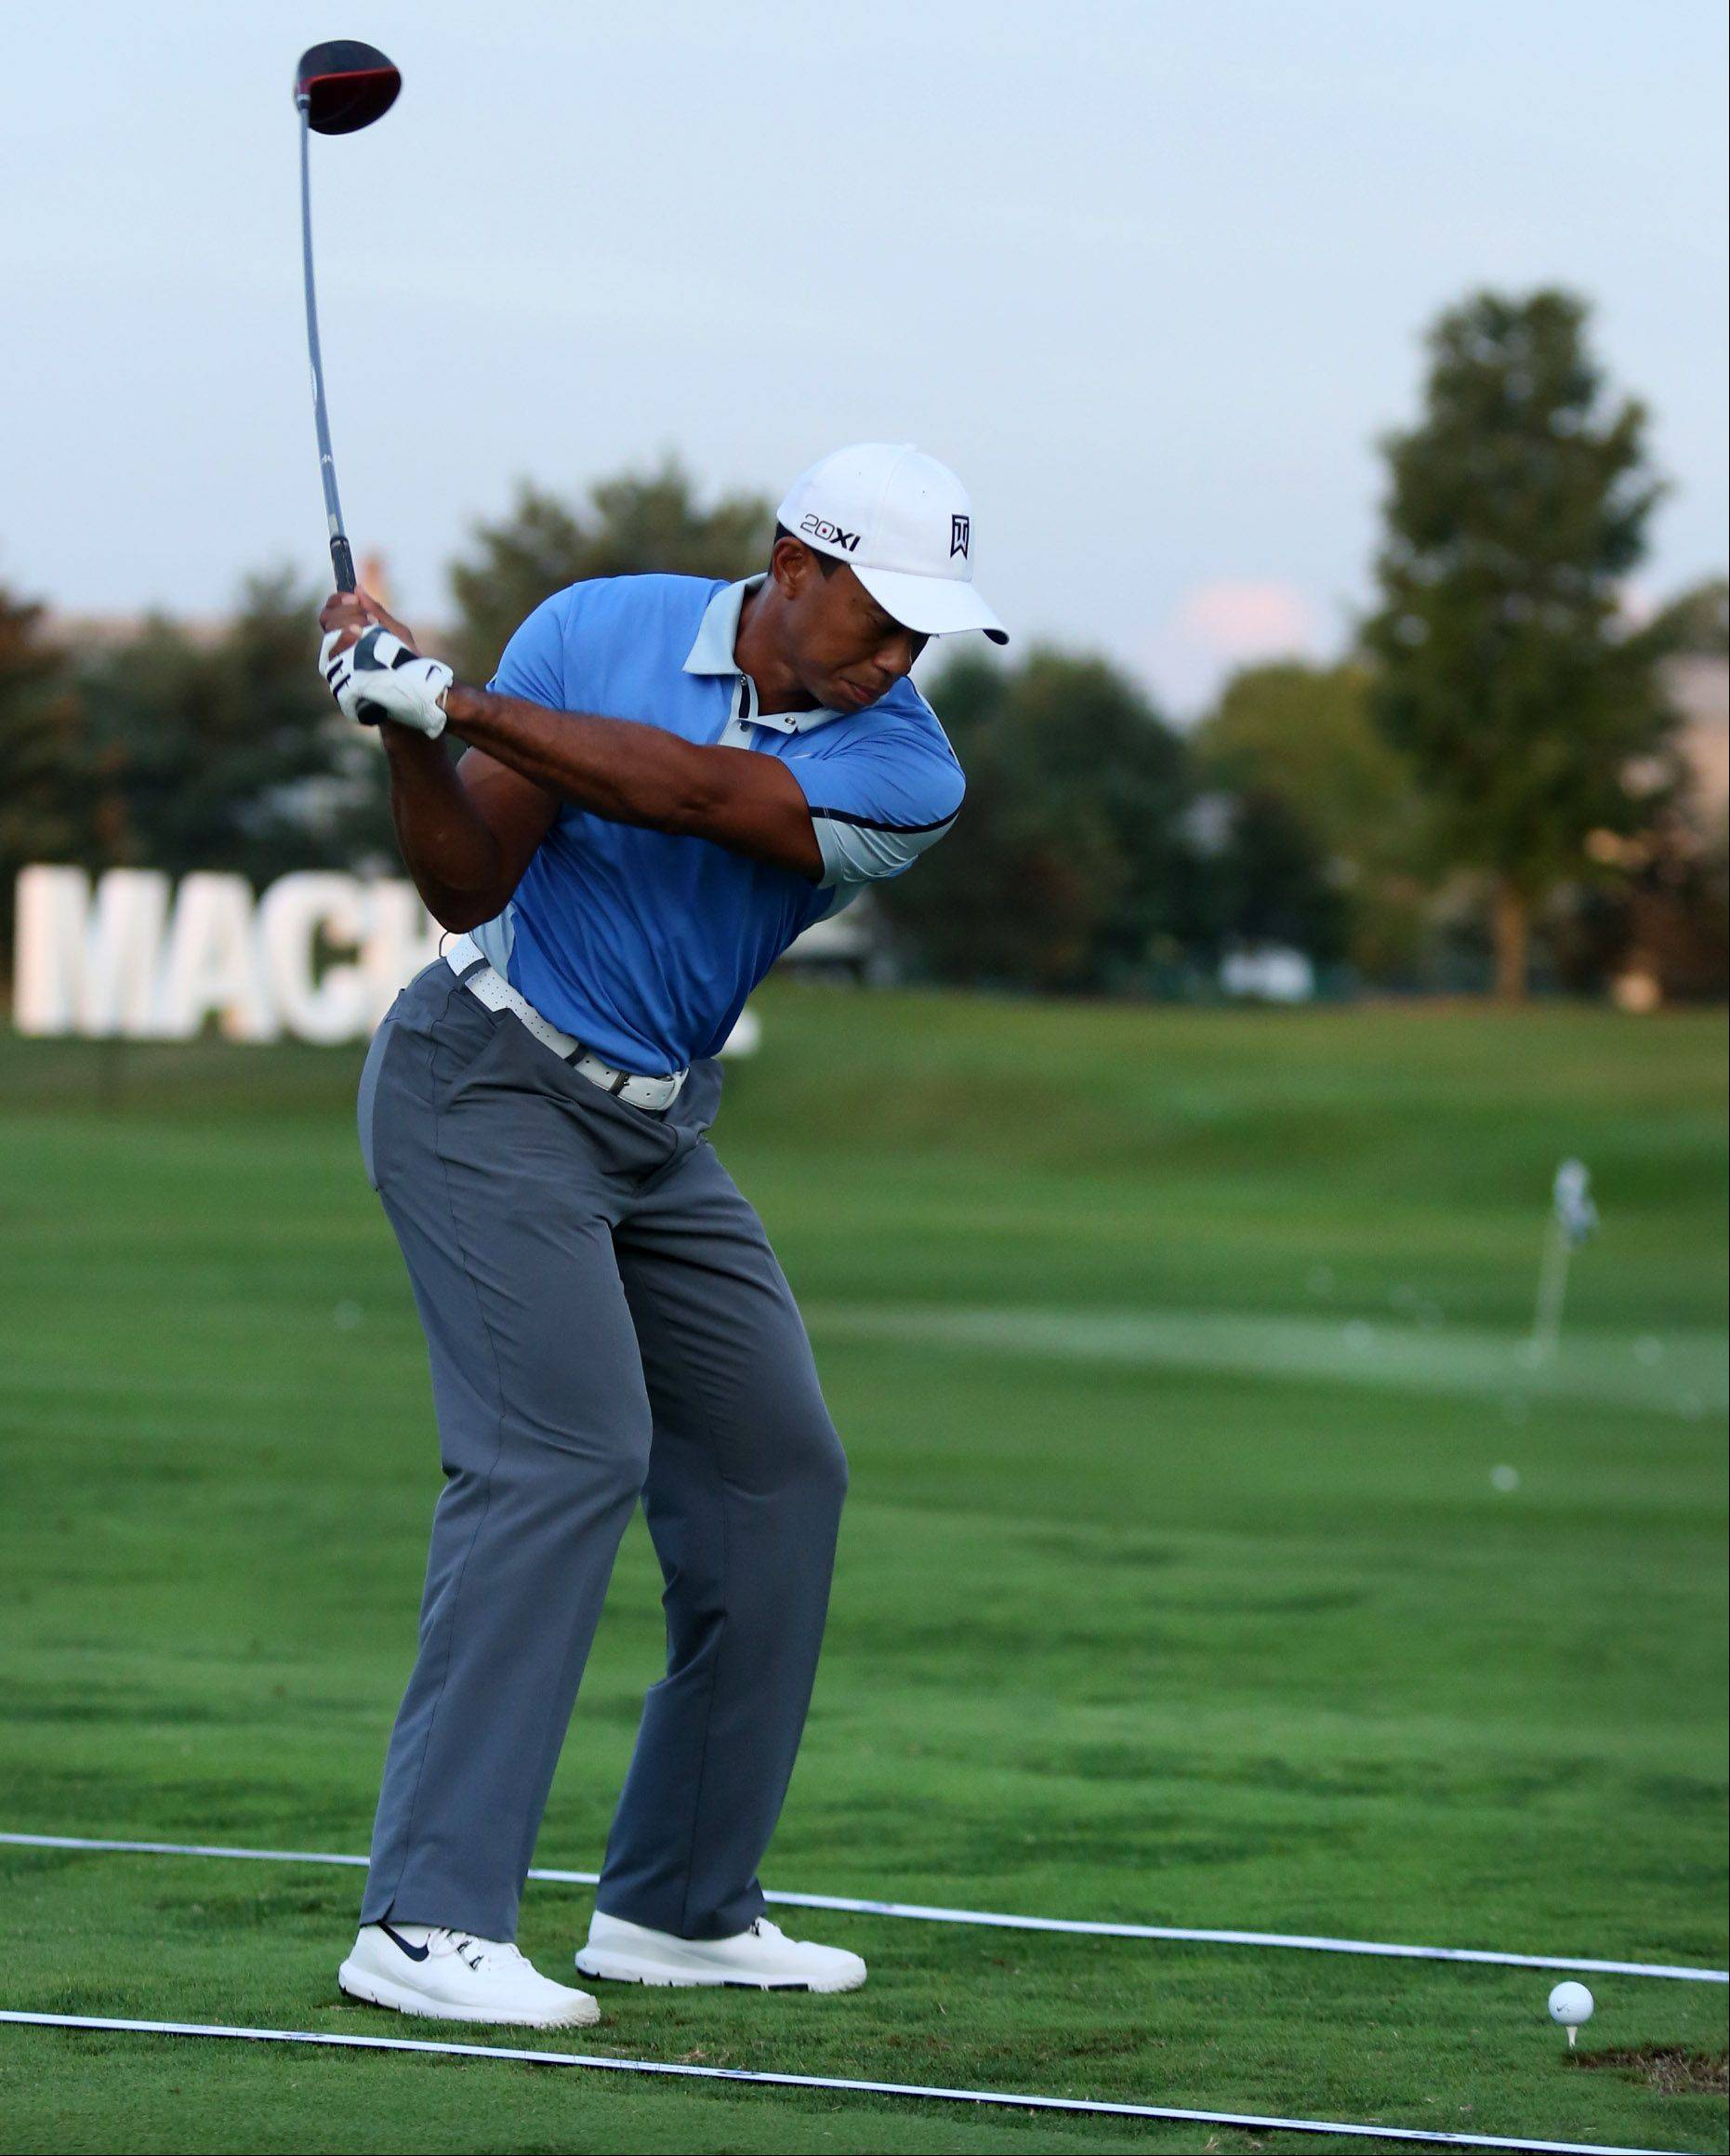 Tiger Woods on the practice driving range.